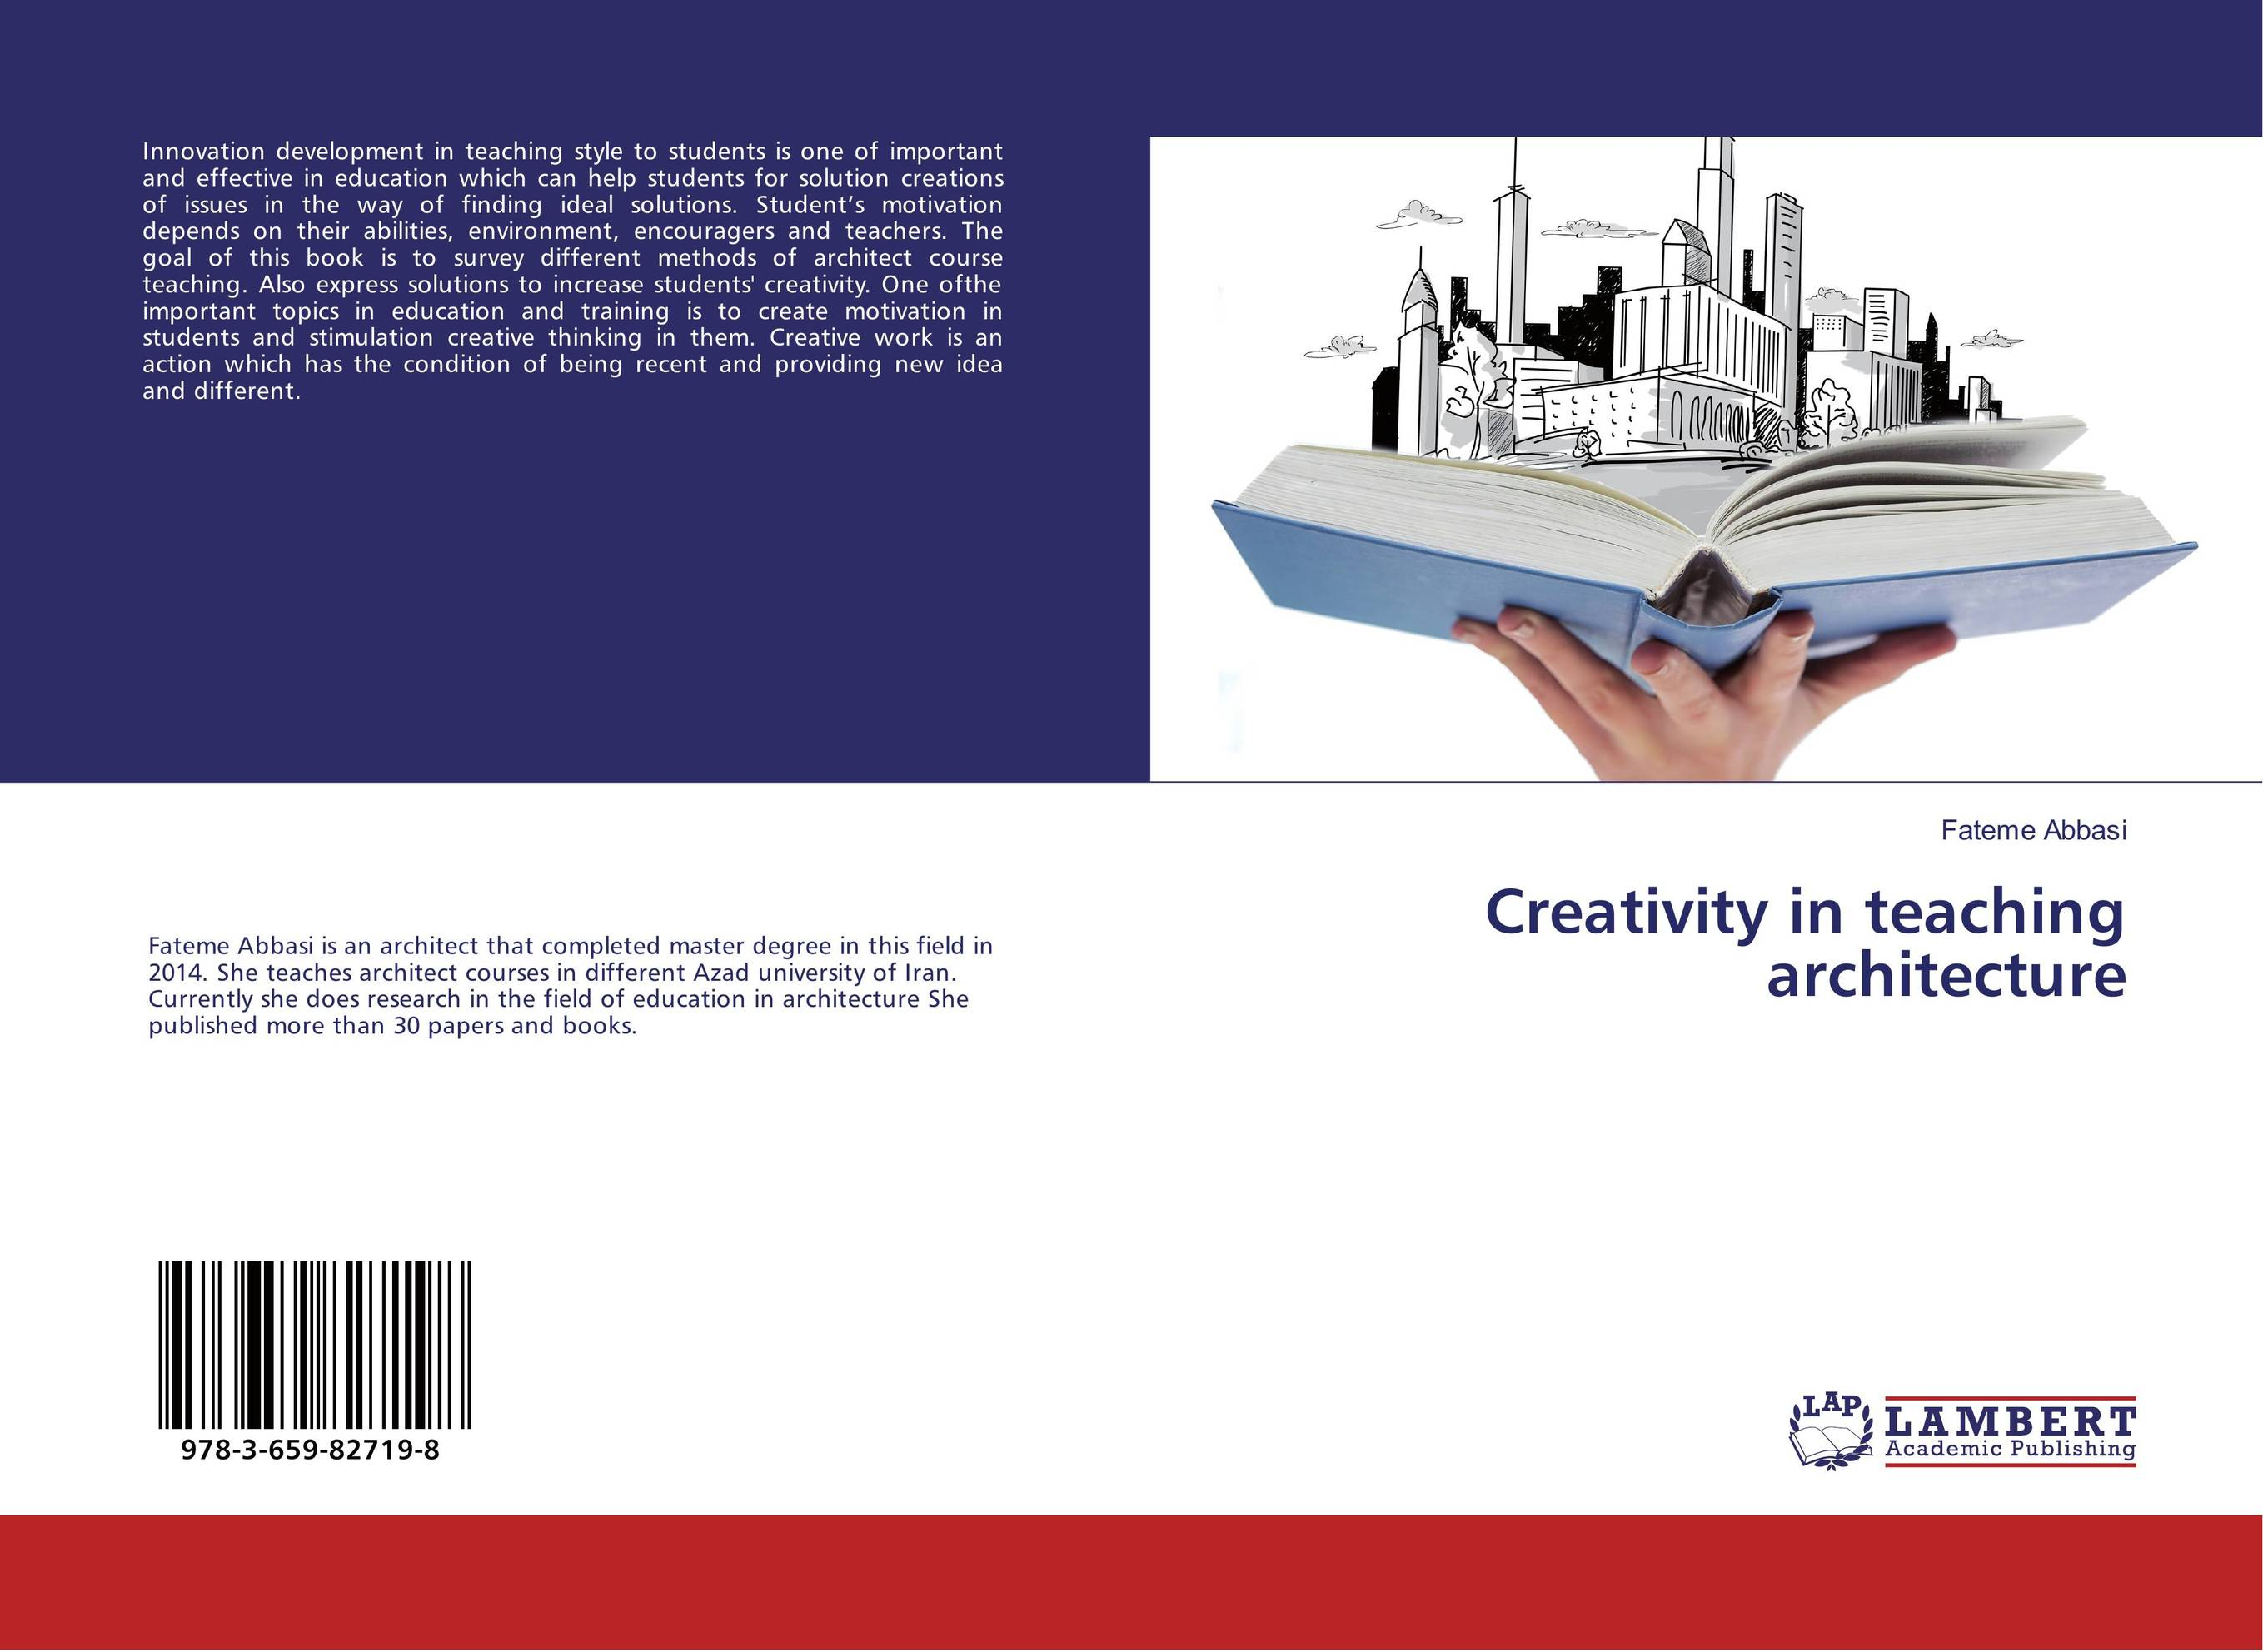 Creativity in teaching architecture environment science issues solutions